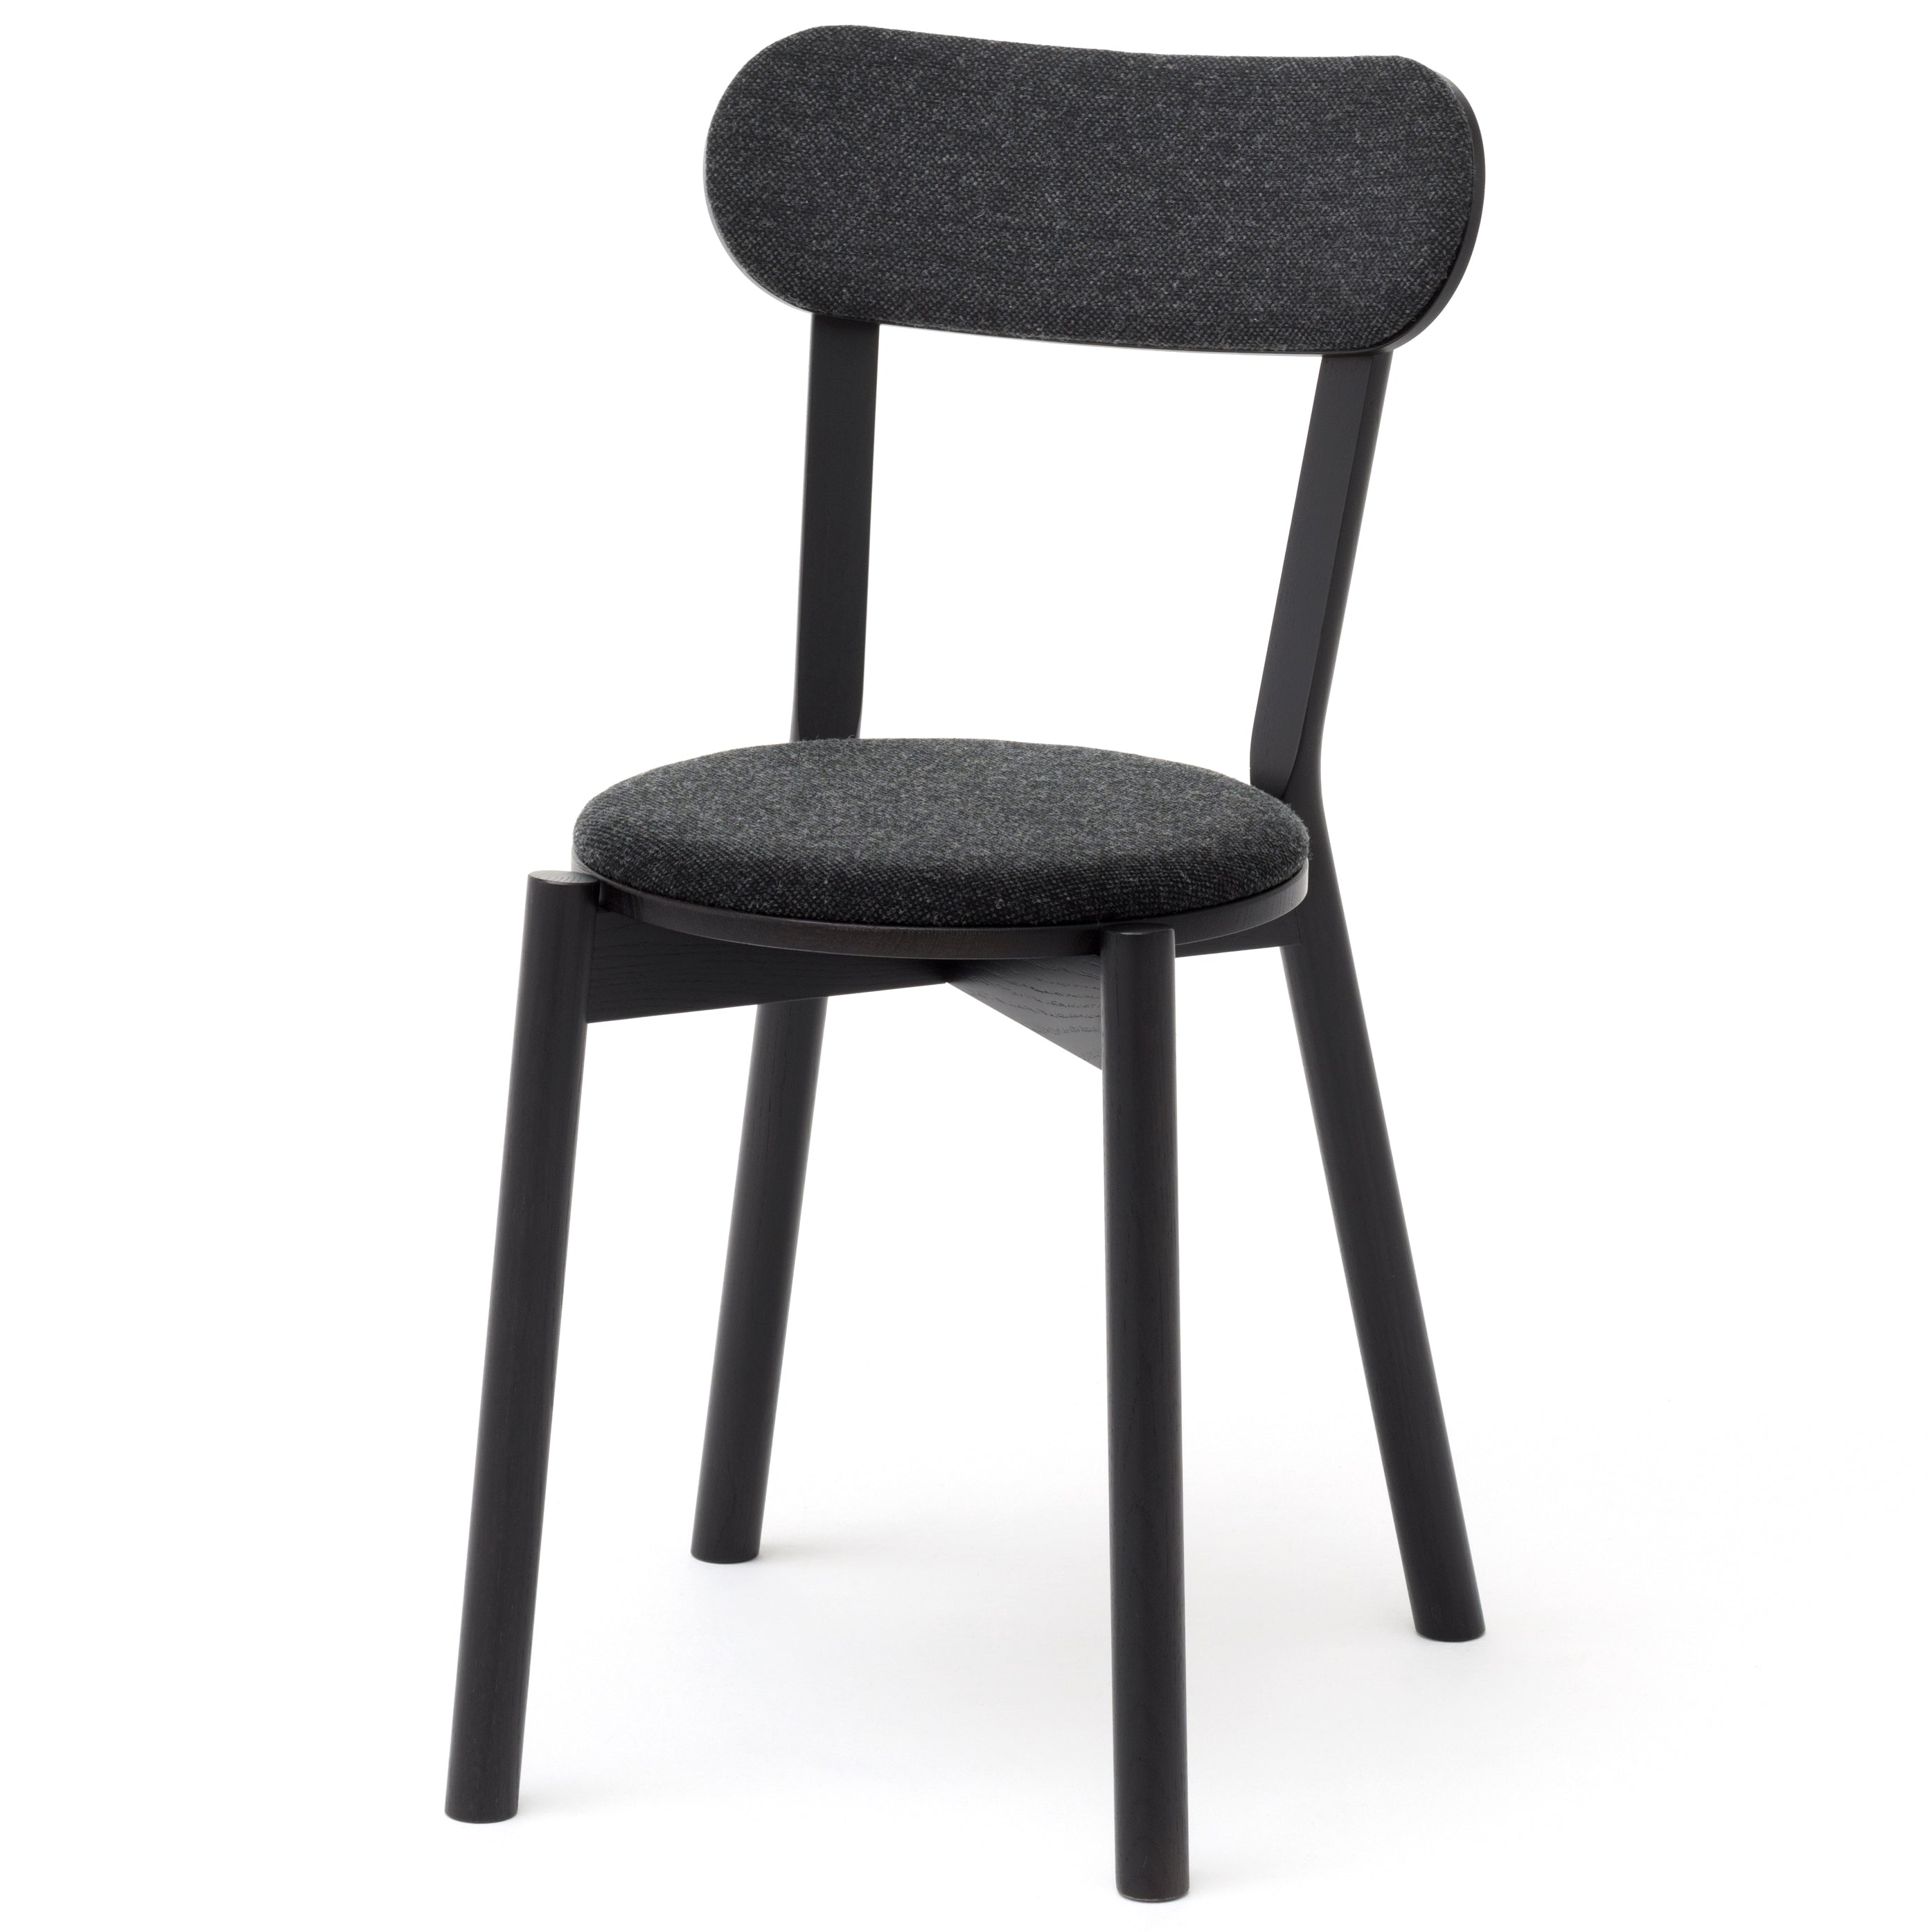 Castor Chair Pad: Black